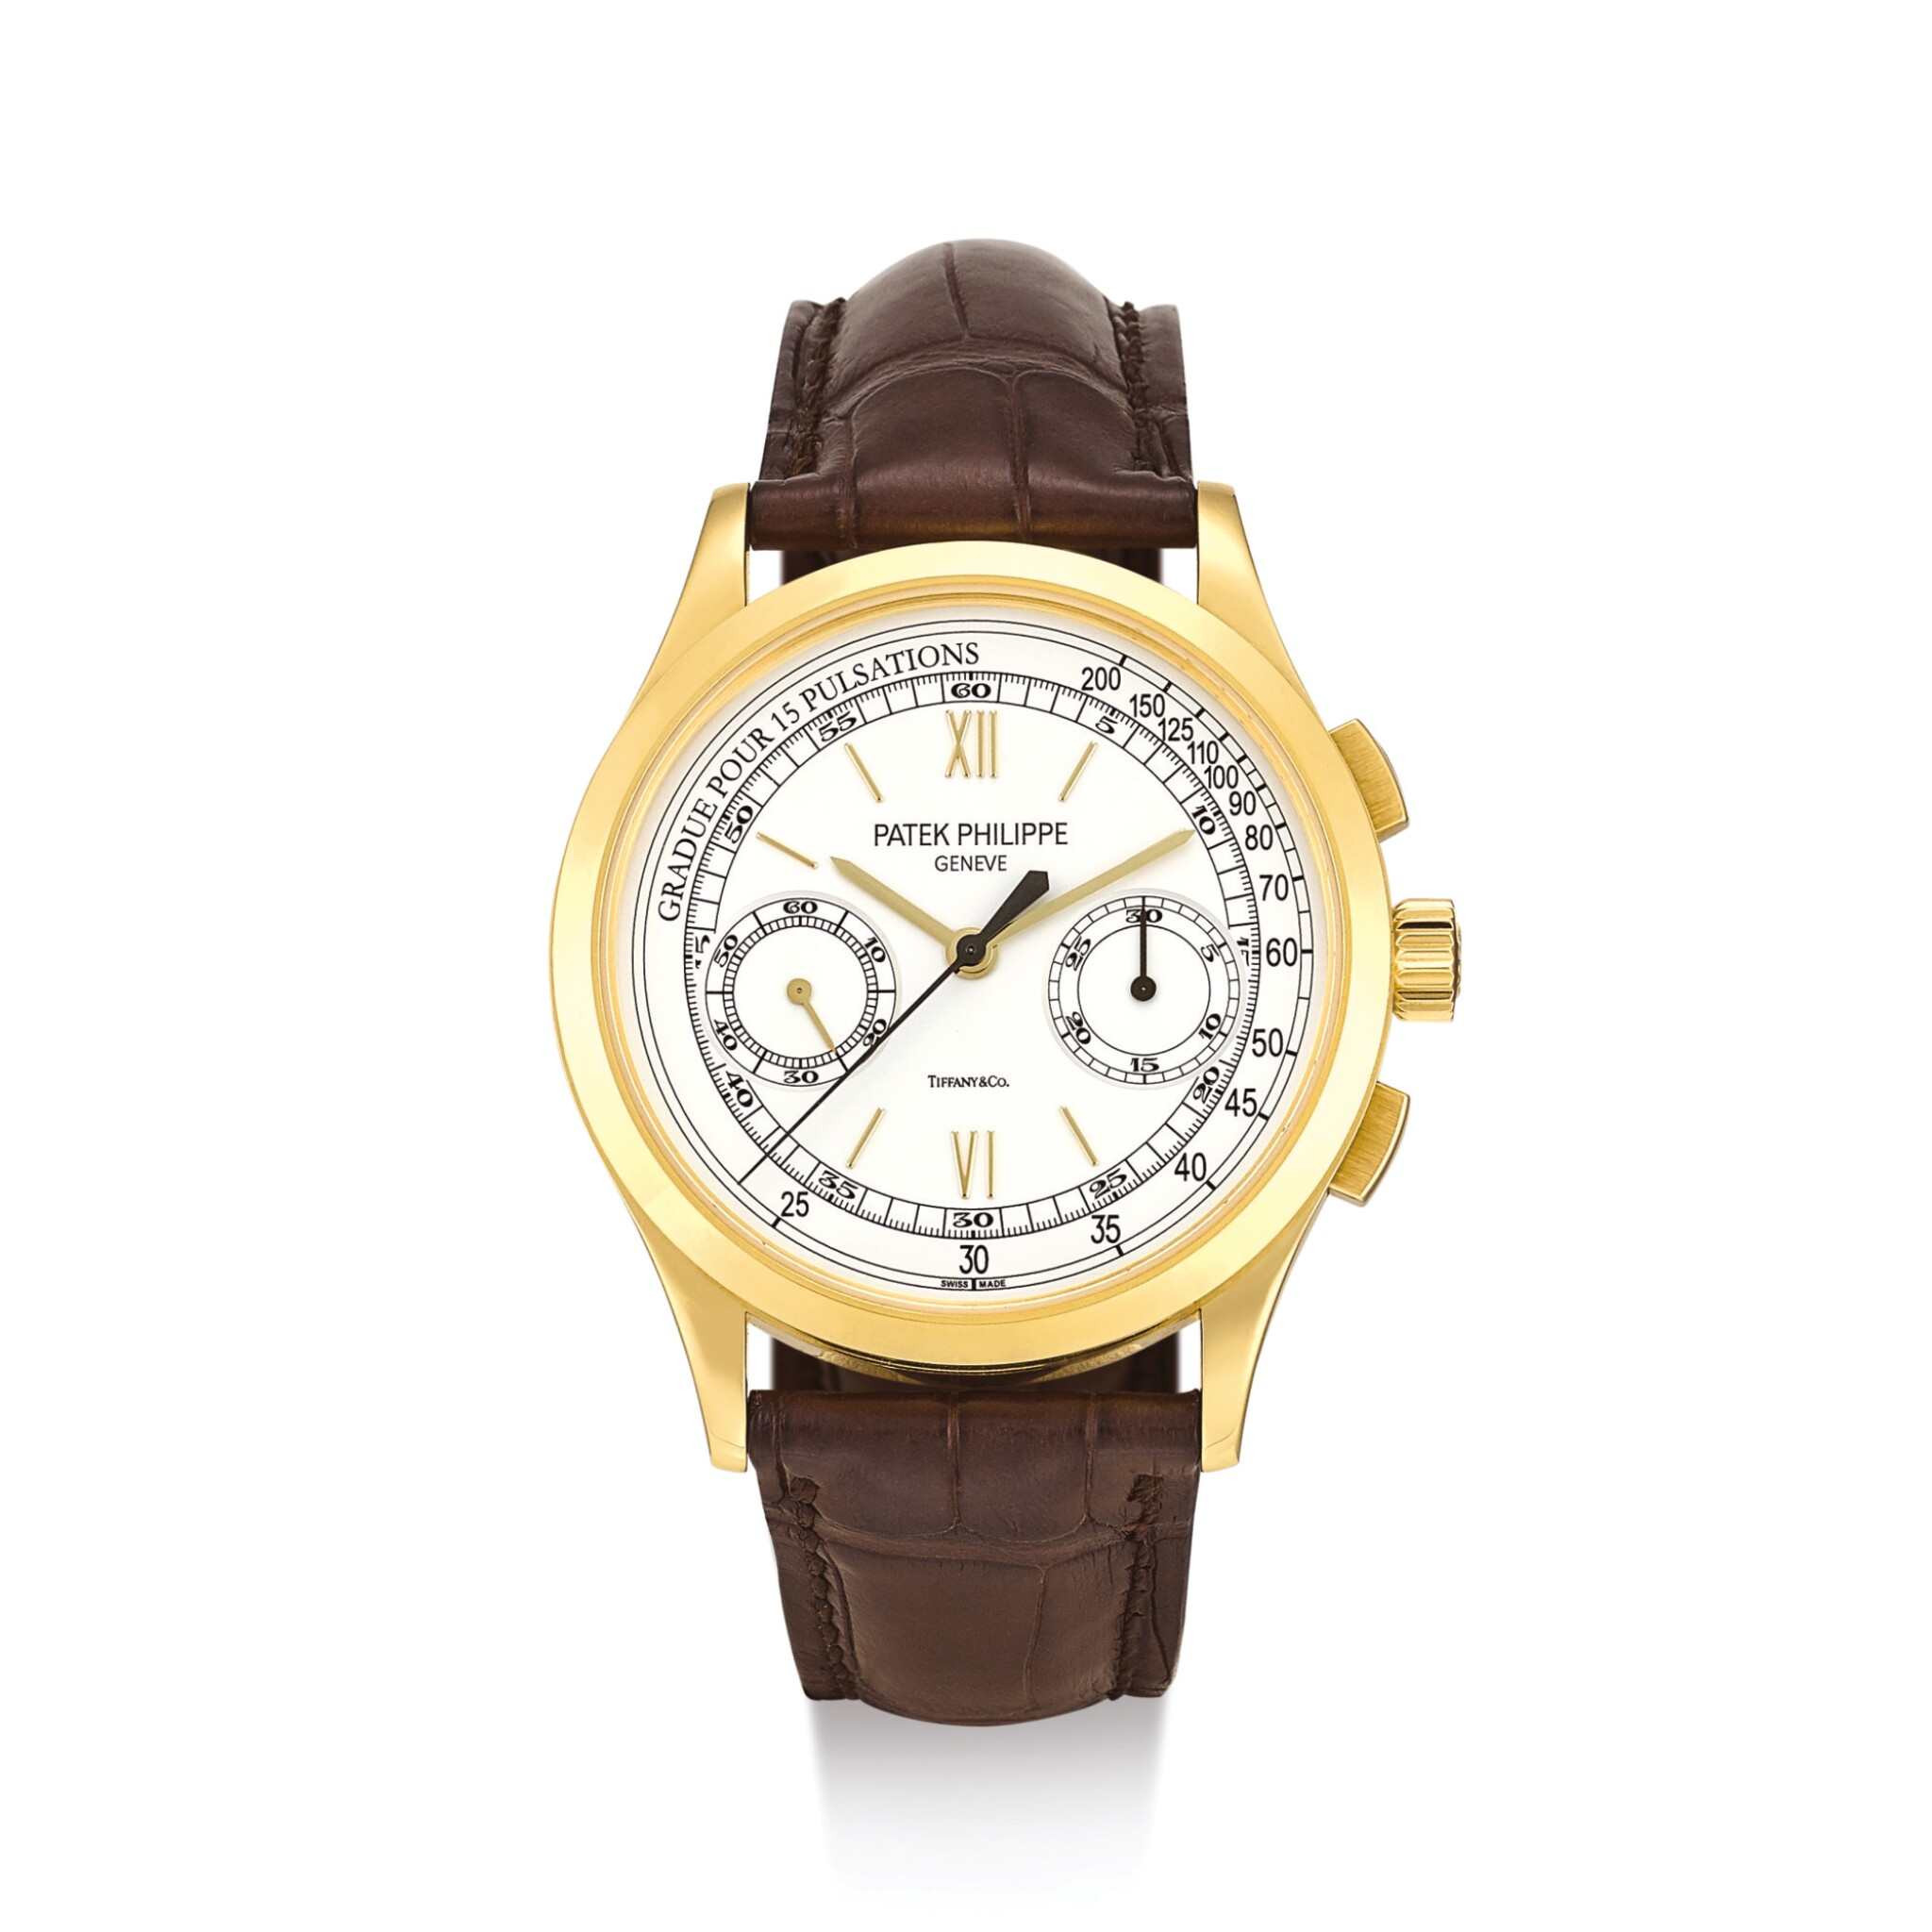 """View full screen - View 1 of Lot 2070. PATEK PHILIPPE     REFERENCE 5170  A YELLOW GOLD CHRONOGRAPH WRISTWATCH WITH PULSATION SCALE, RETAILED BY TIFFANY & CO., MADE IN 2010""""   百達翡麗   型號5170 黃金計時腕錶,備脈搏計刻度,由蒂芙尼發行,機芯編號5532742,錶殼編號4517335,2010年製""""."""